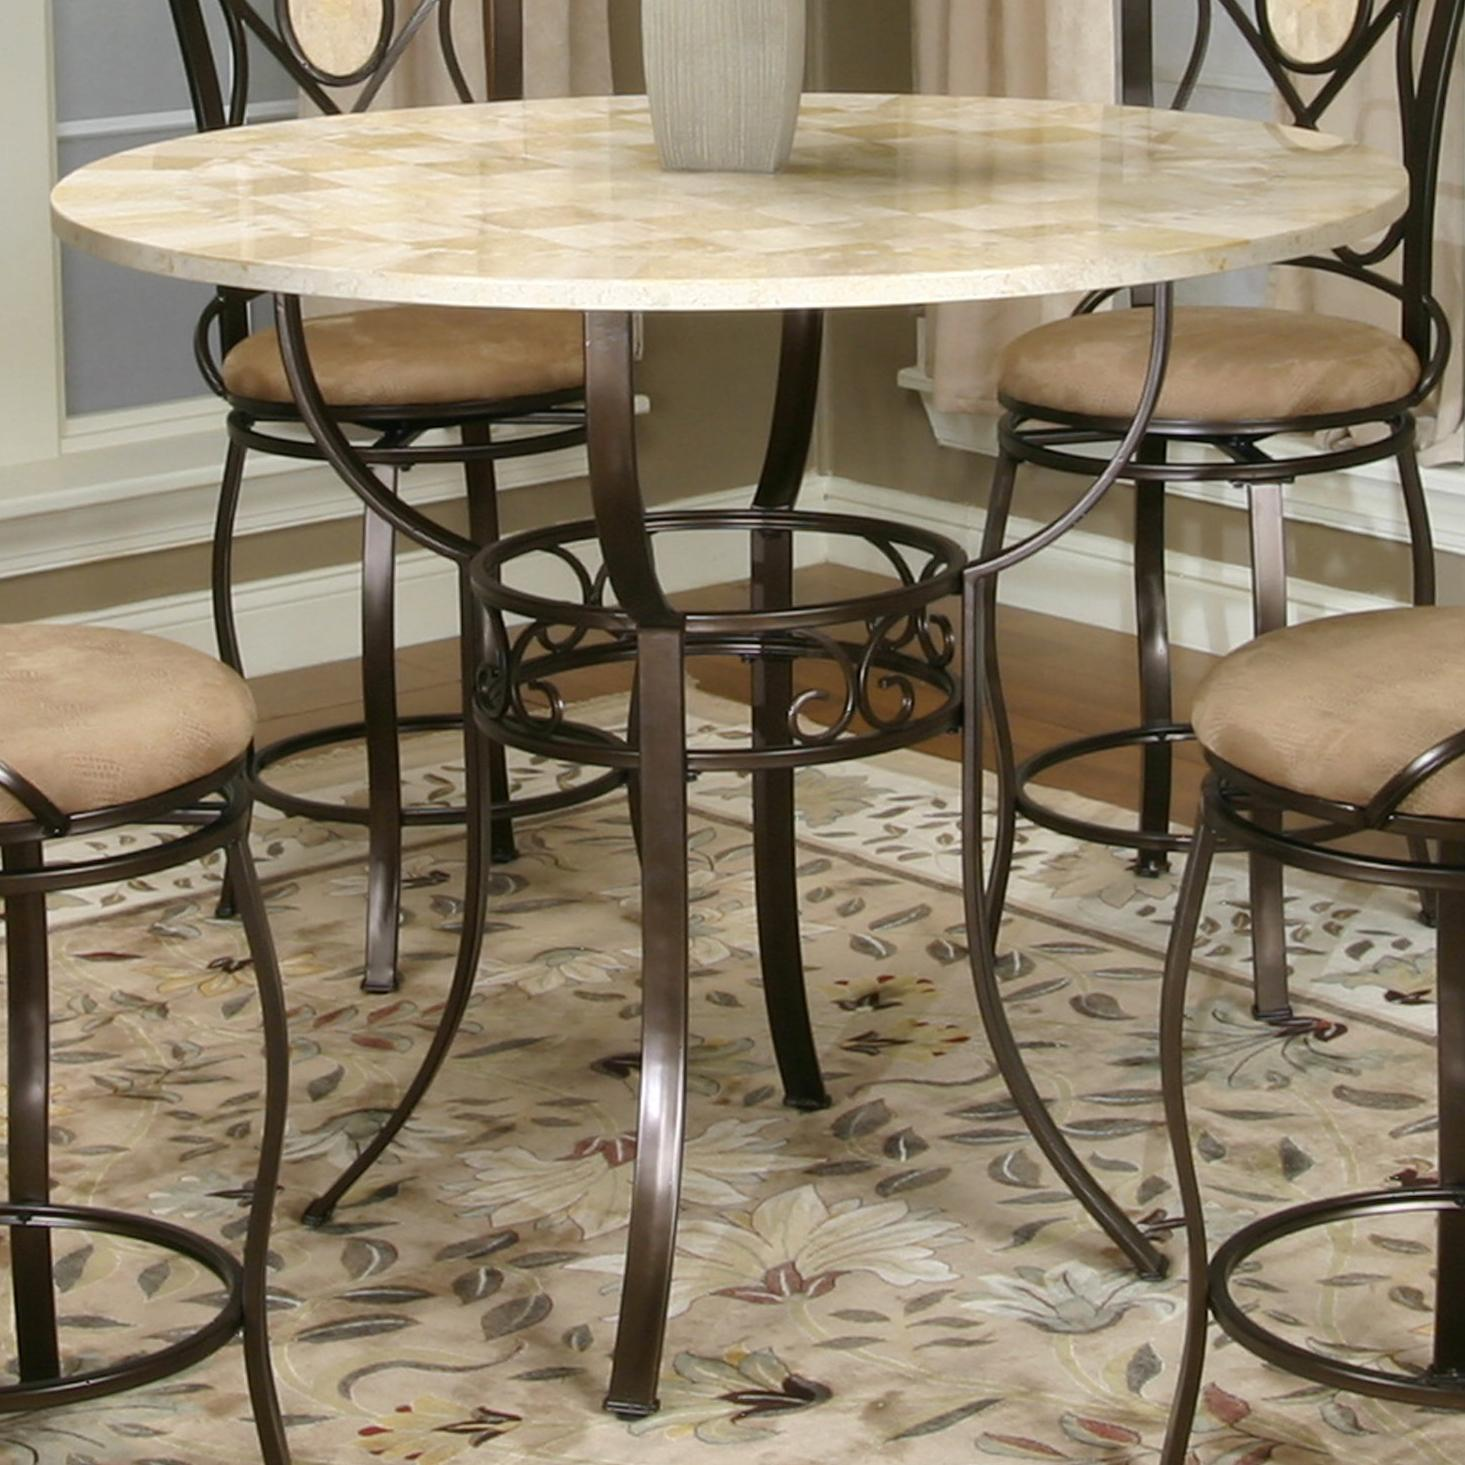 Counter Height Round Pub Table : ... Bronze Counter Height Pub Table with Round Glacier Inlaid Marble Top